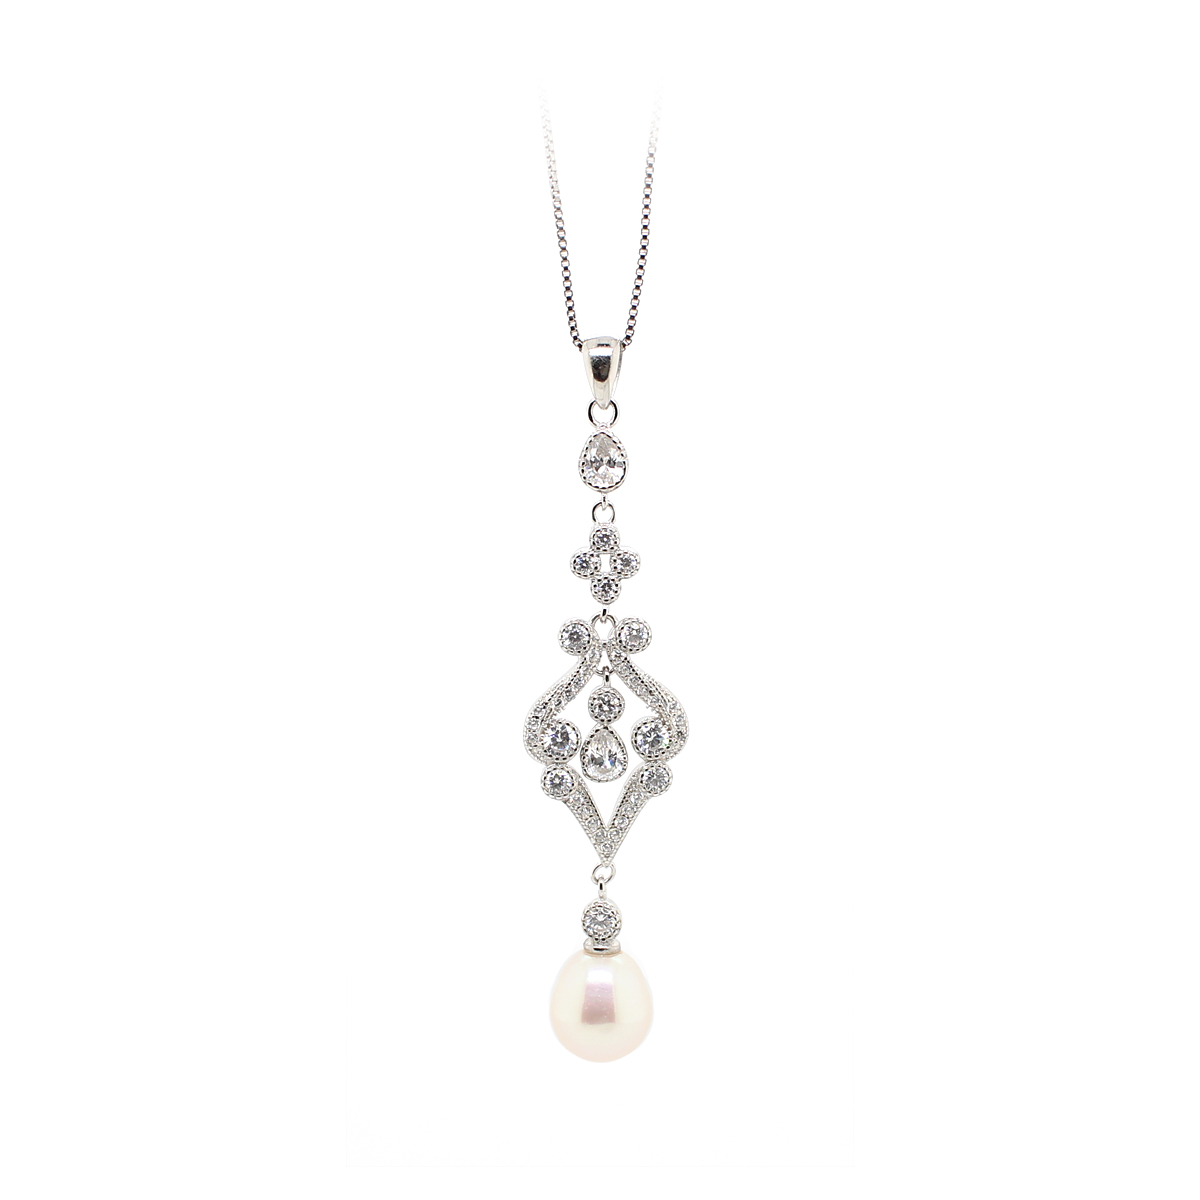 14 Karat White Gold Dangle Pearl and Cubic Zirconia Necklace